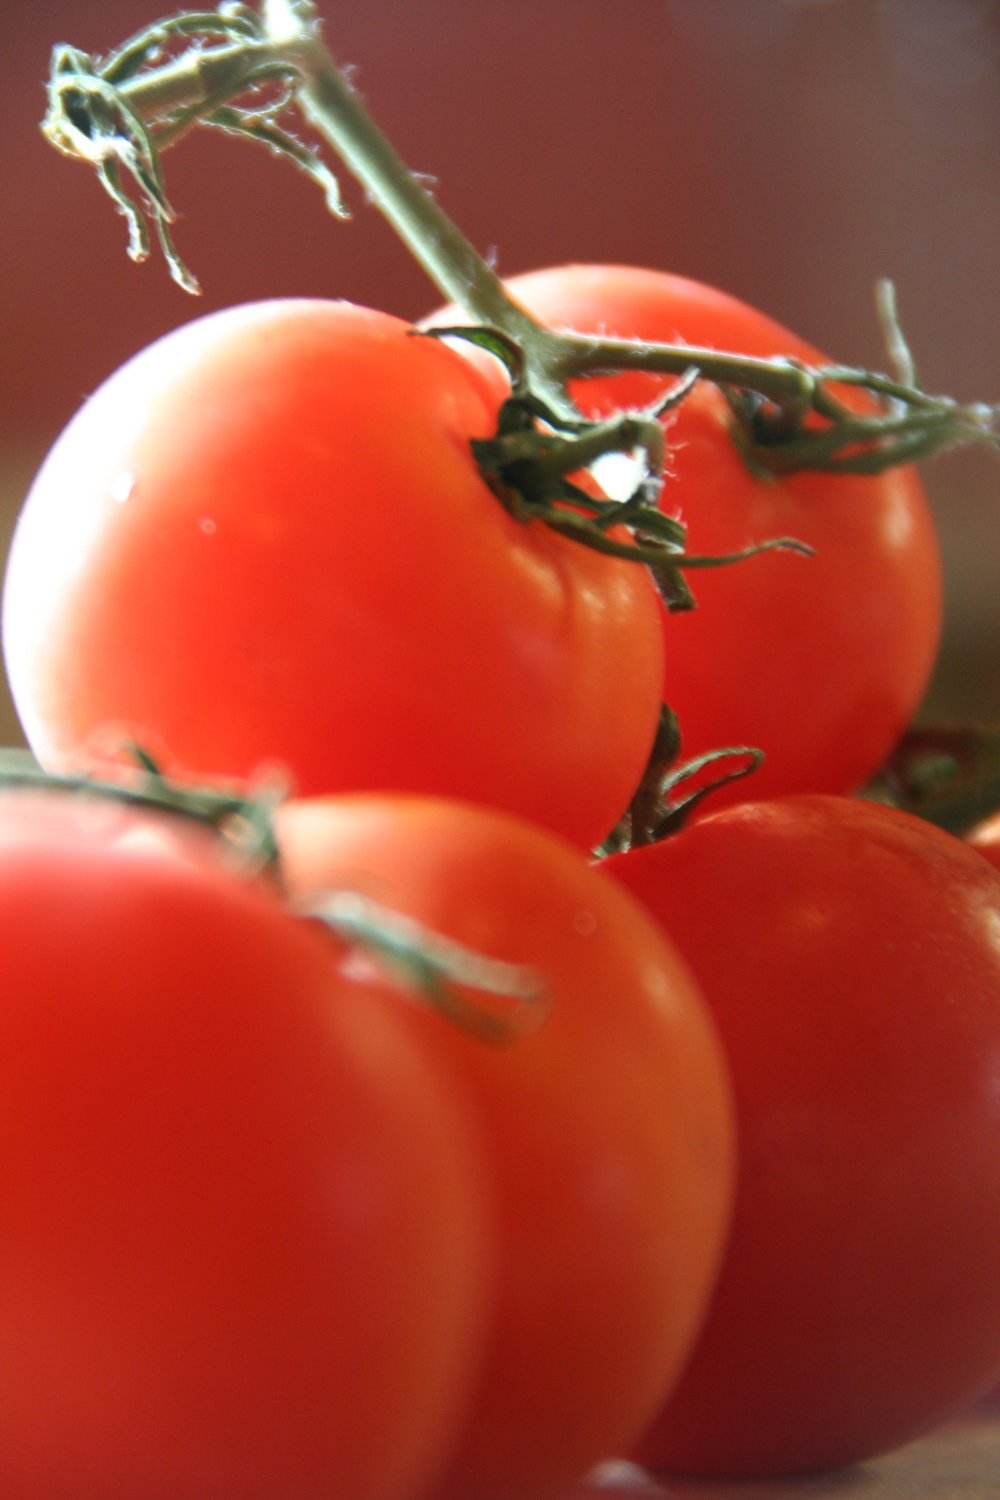 Tomato - Tomato is your sister.more round than legal. She drinks Coca-Colafor breakfast and pats down itinerant items on her kitchen counter,thoughtful as Braille.Her indelible fingersslice tomatoesin eighths, the precise mouthfulfor two fingers,leaving behindonly a few of thesleeved seeds.